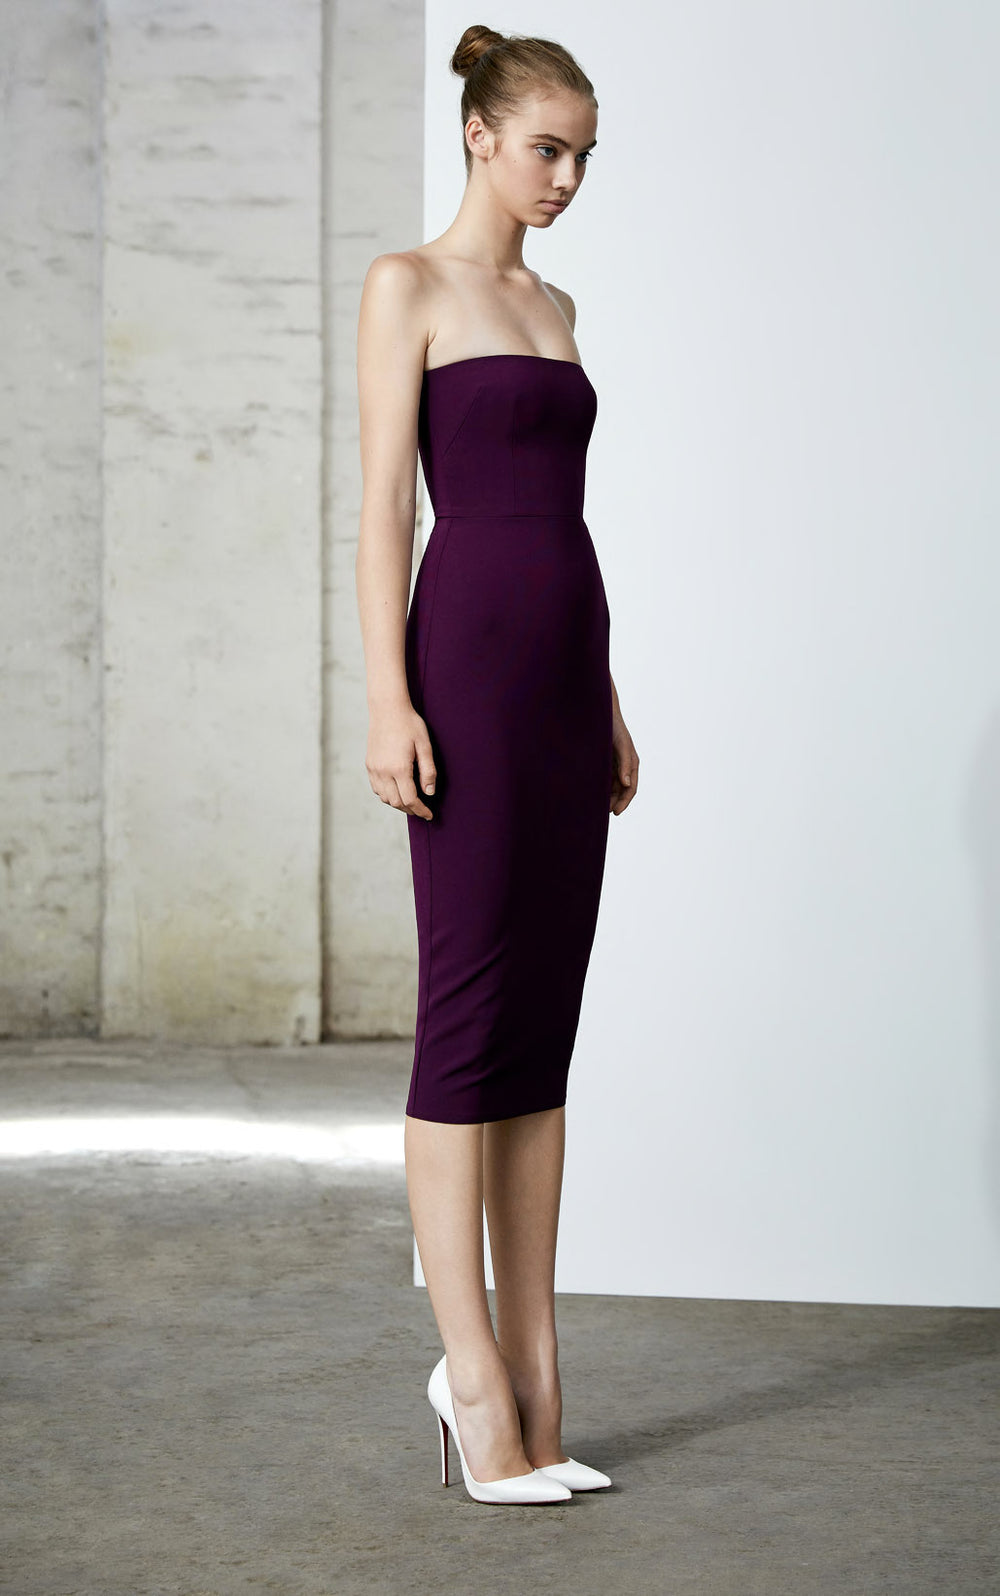 The Alex Perry Ryan Stretch Strapless Dress at Maximillia eBoutique.